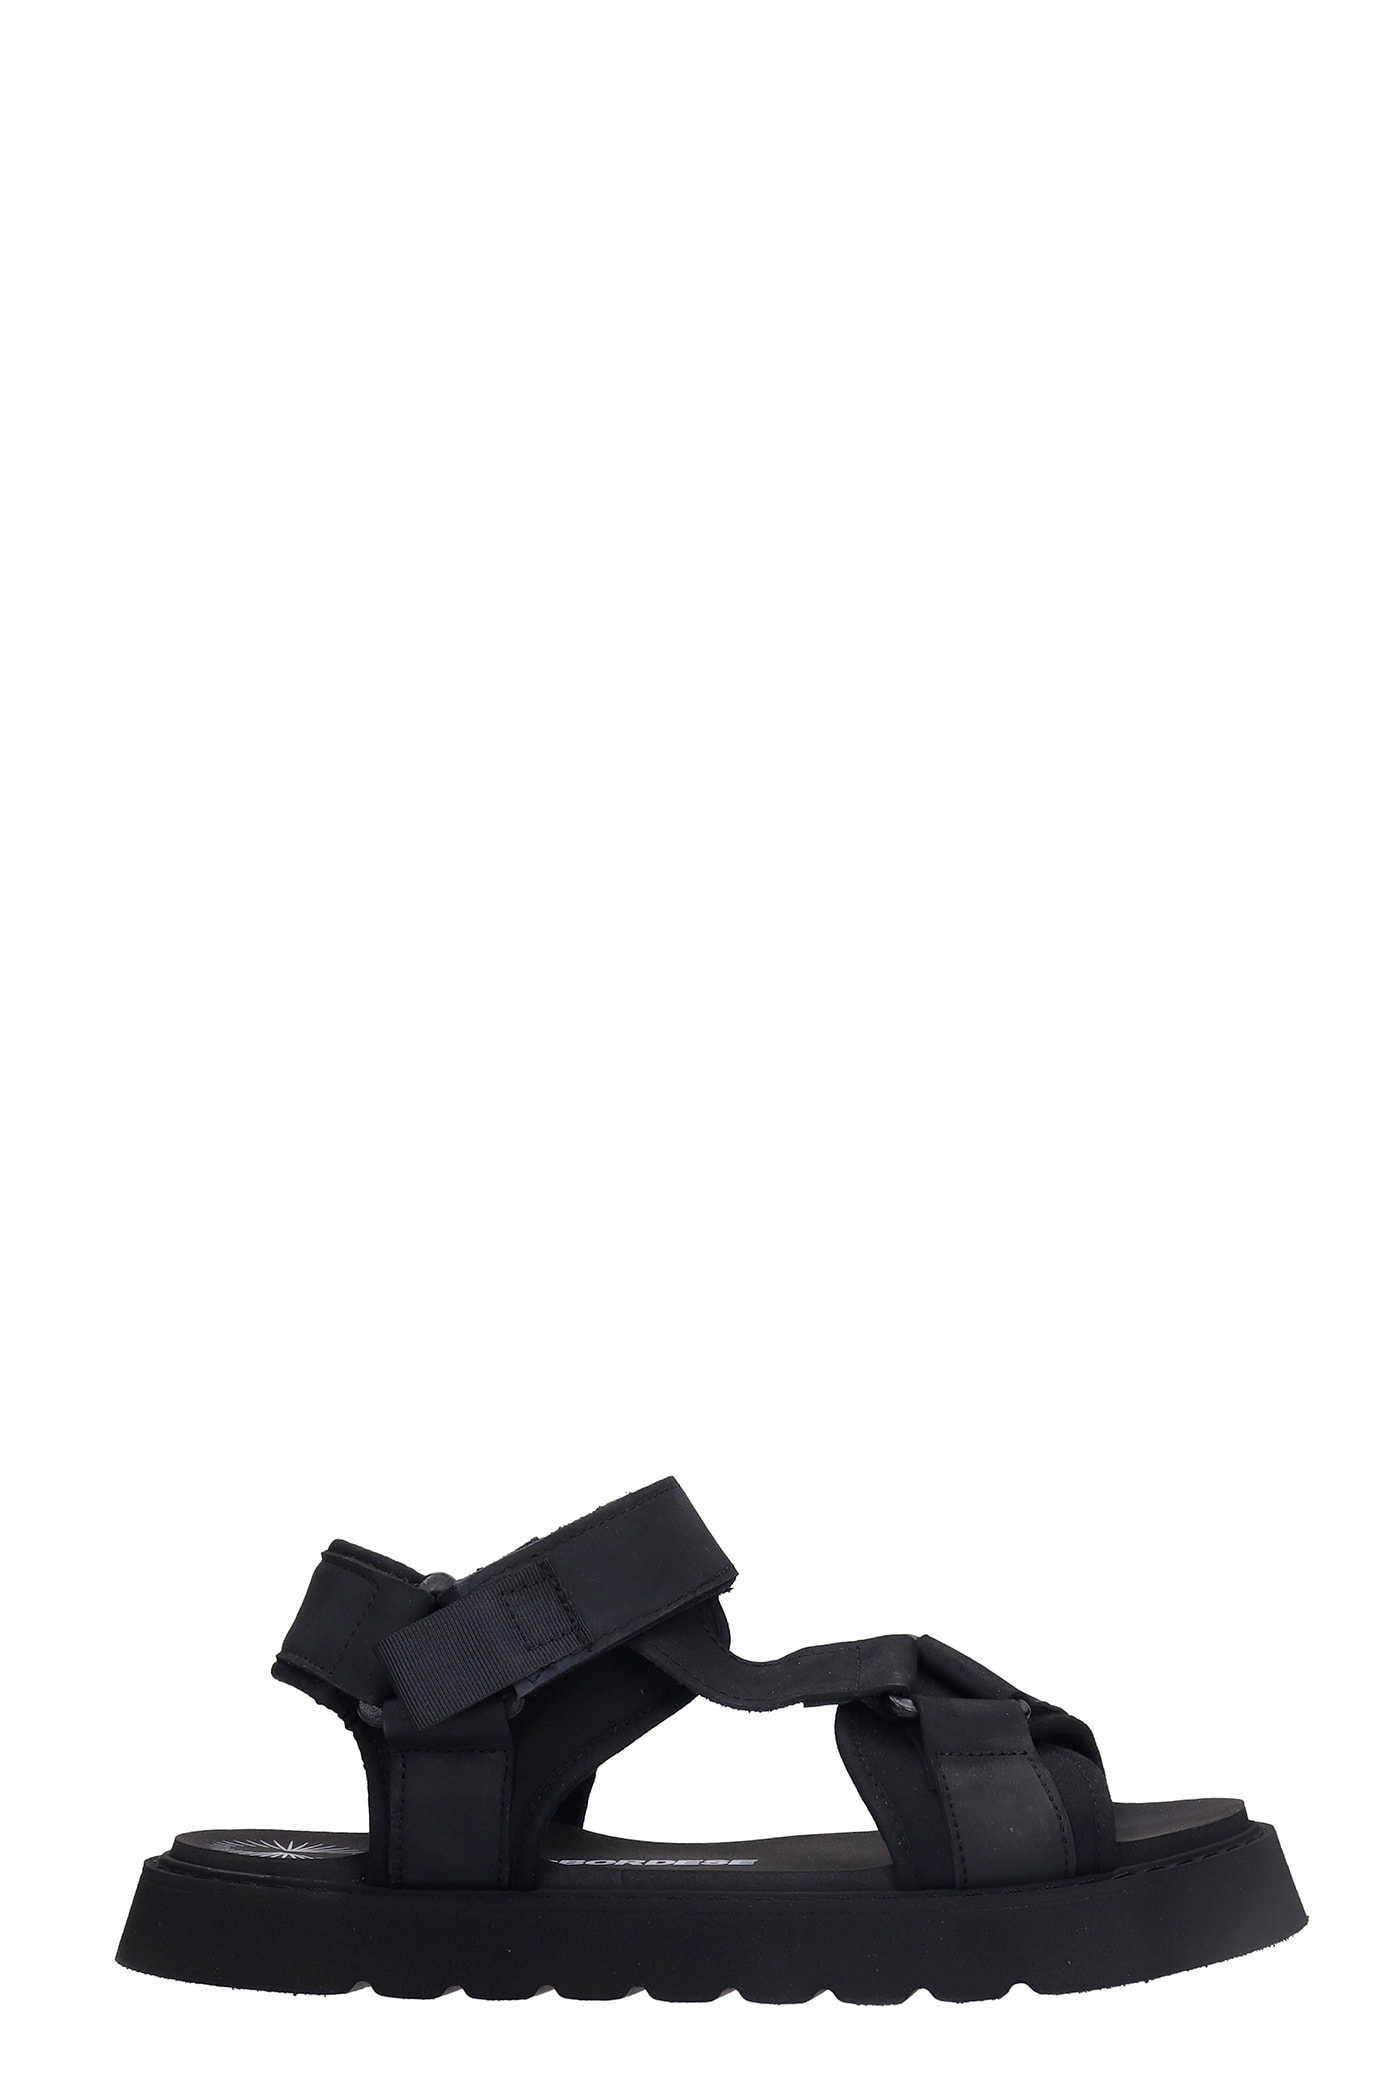 Surf Sandal Flats In Black Synthetic Fibers